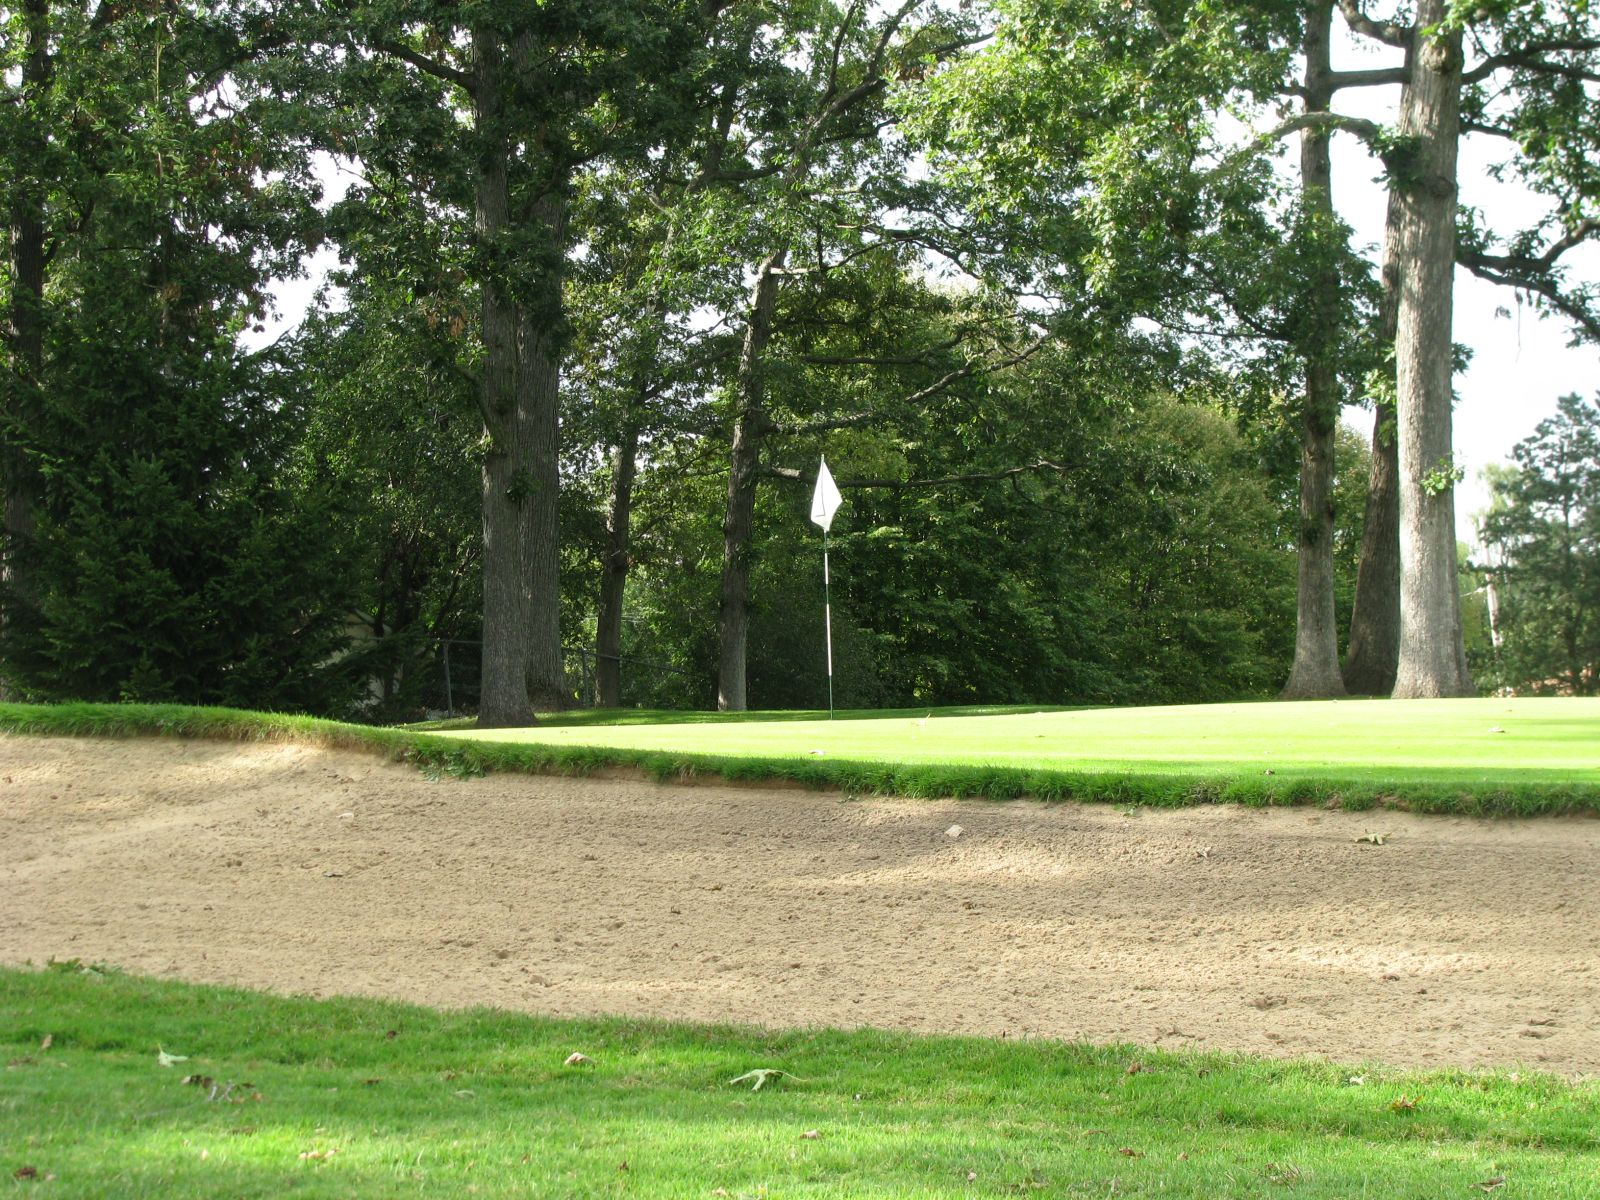 Greenshire Golf Course bunker